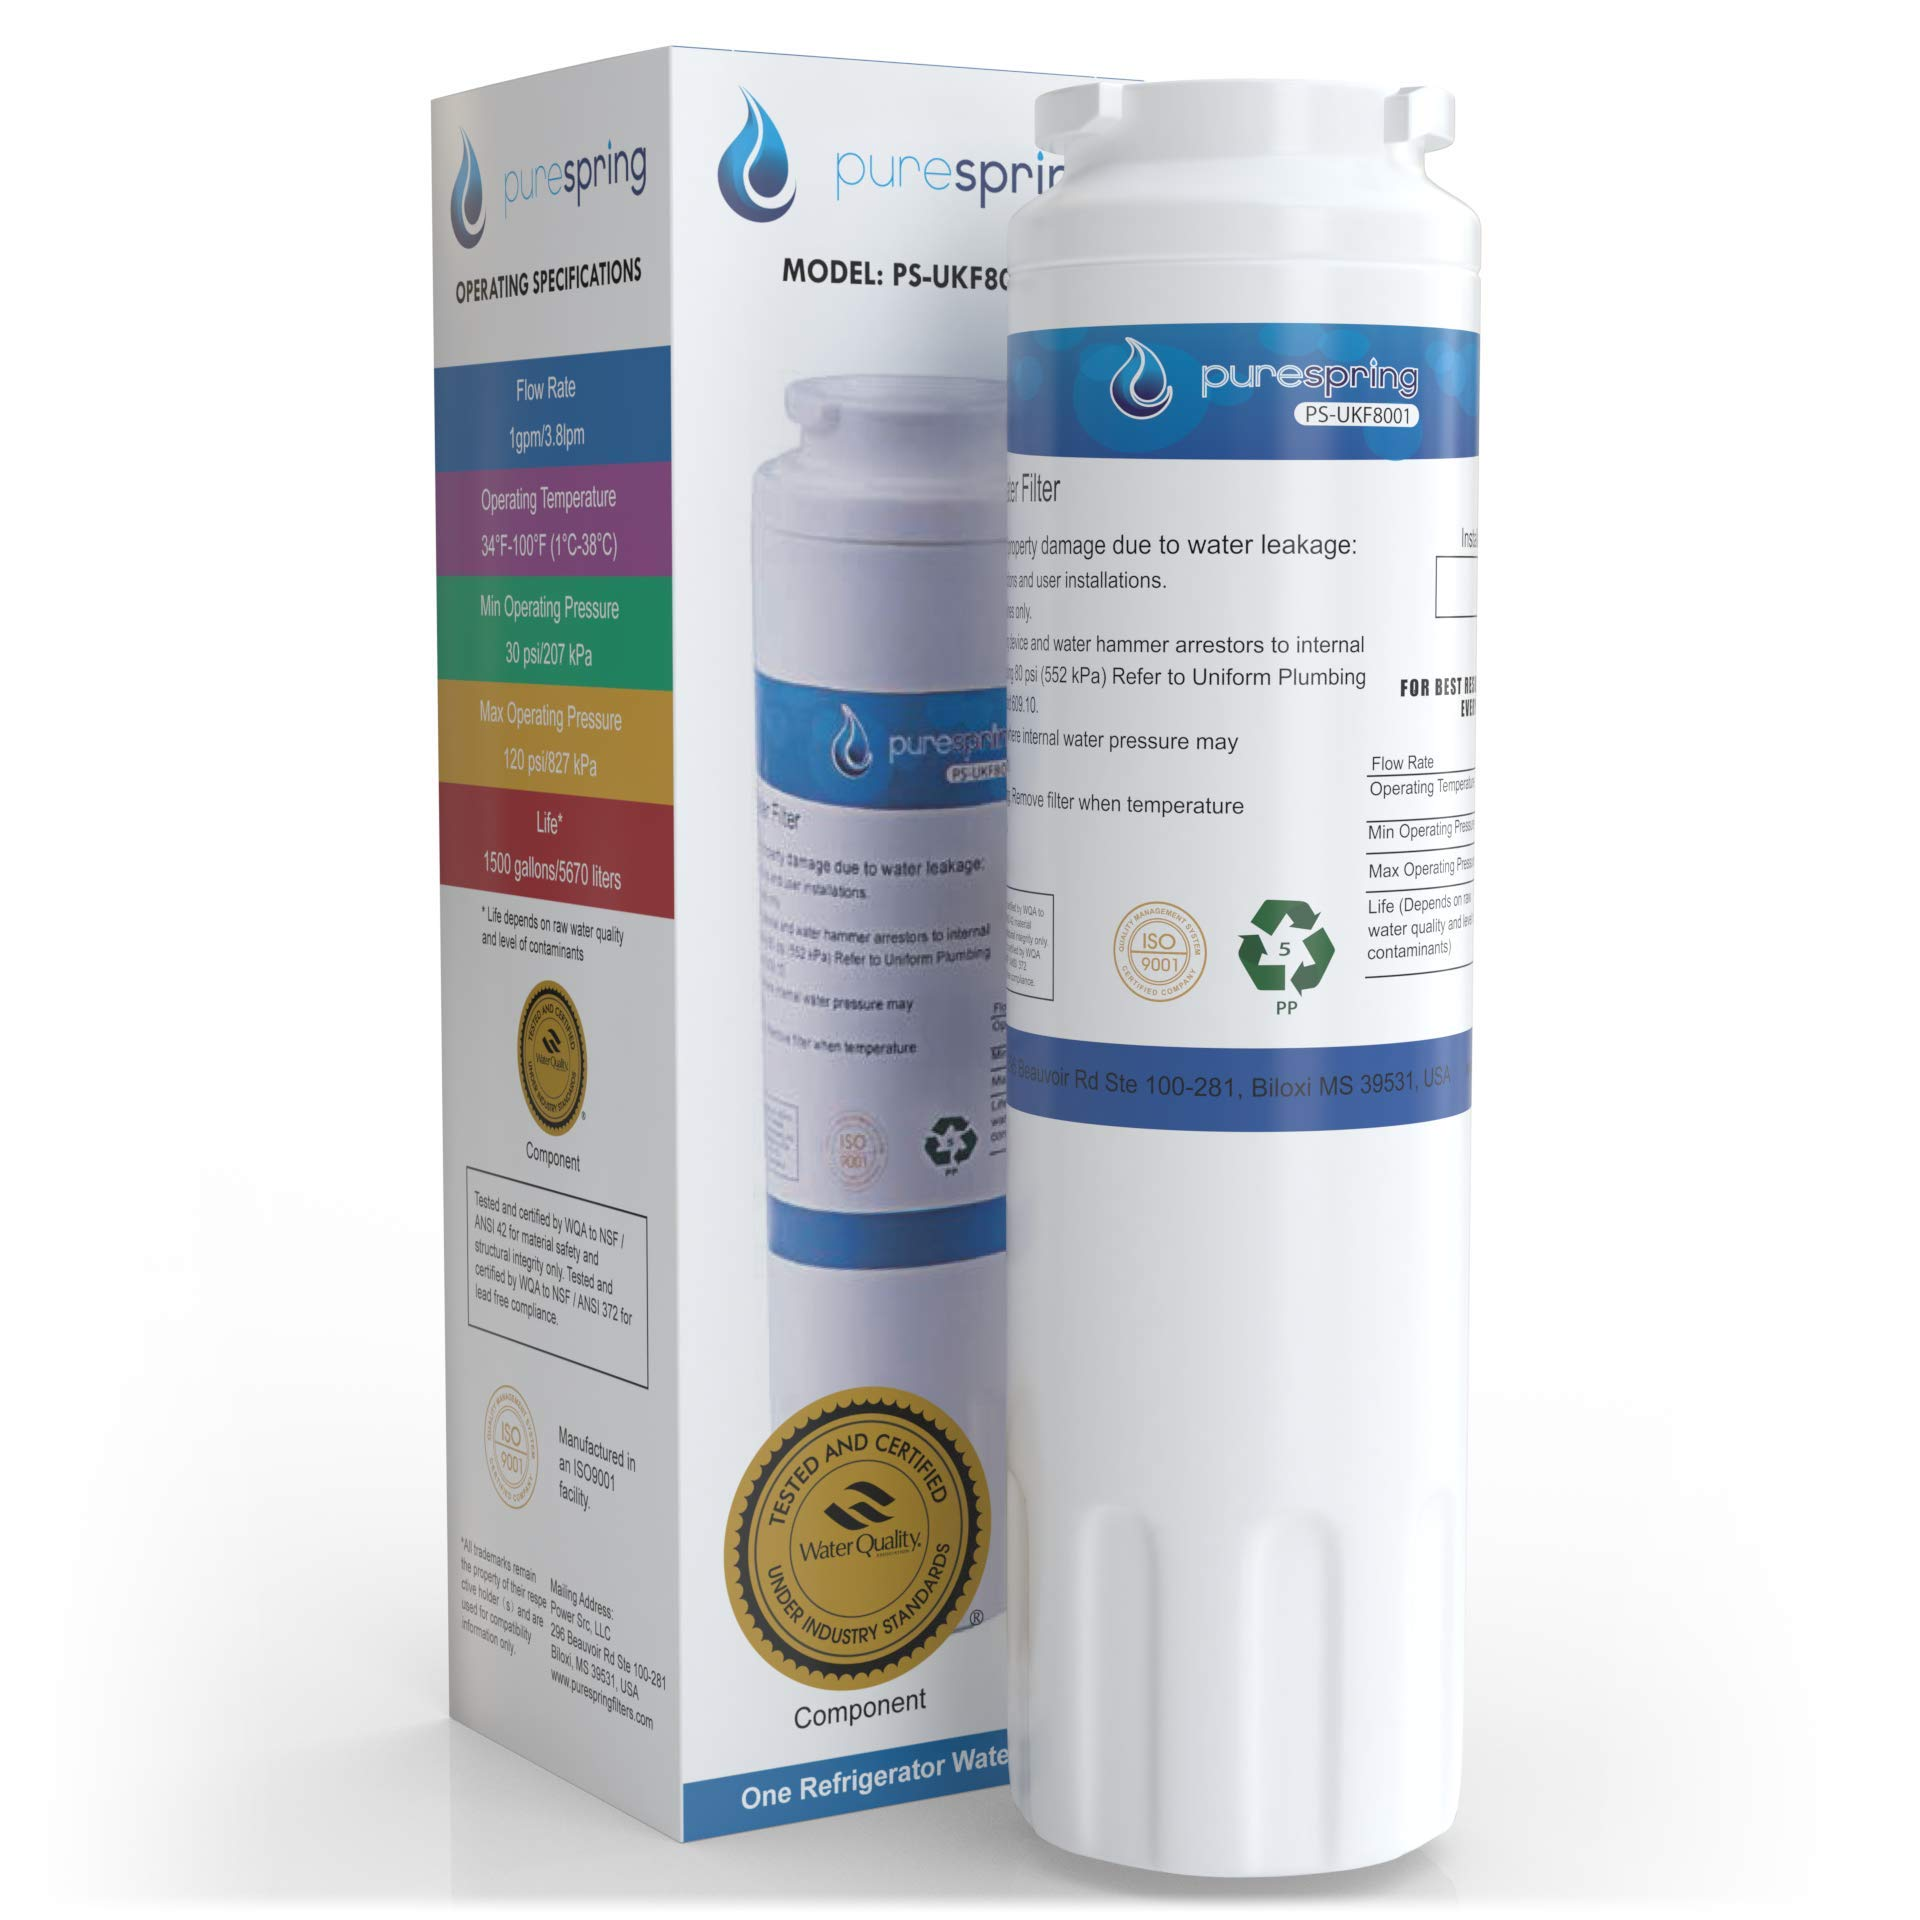 PureSpring Maytag-UKF8001 Compatible Refrigerator Water-Filter - Replaces Maytag UKF8001, EDR4RXD1, PUR Filter 4, Kenmore 46-9005, Viking RWFFR and some Whirlpool, KitchenAid, Bosch models (1 Pack)